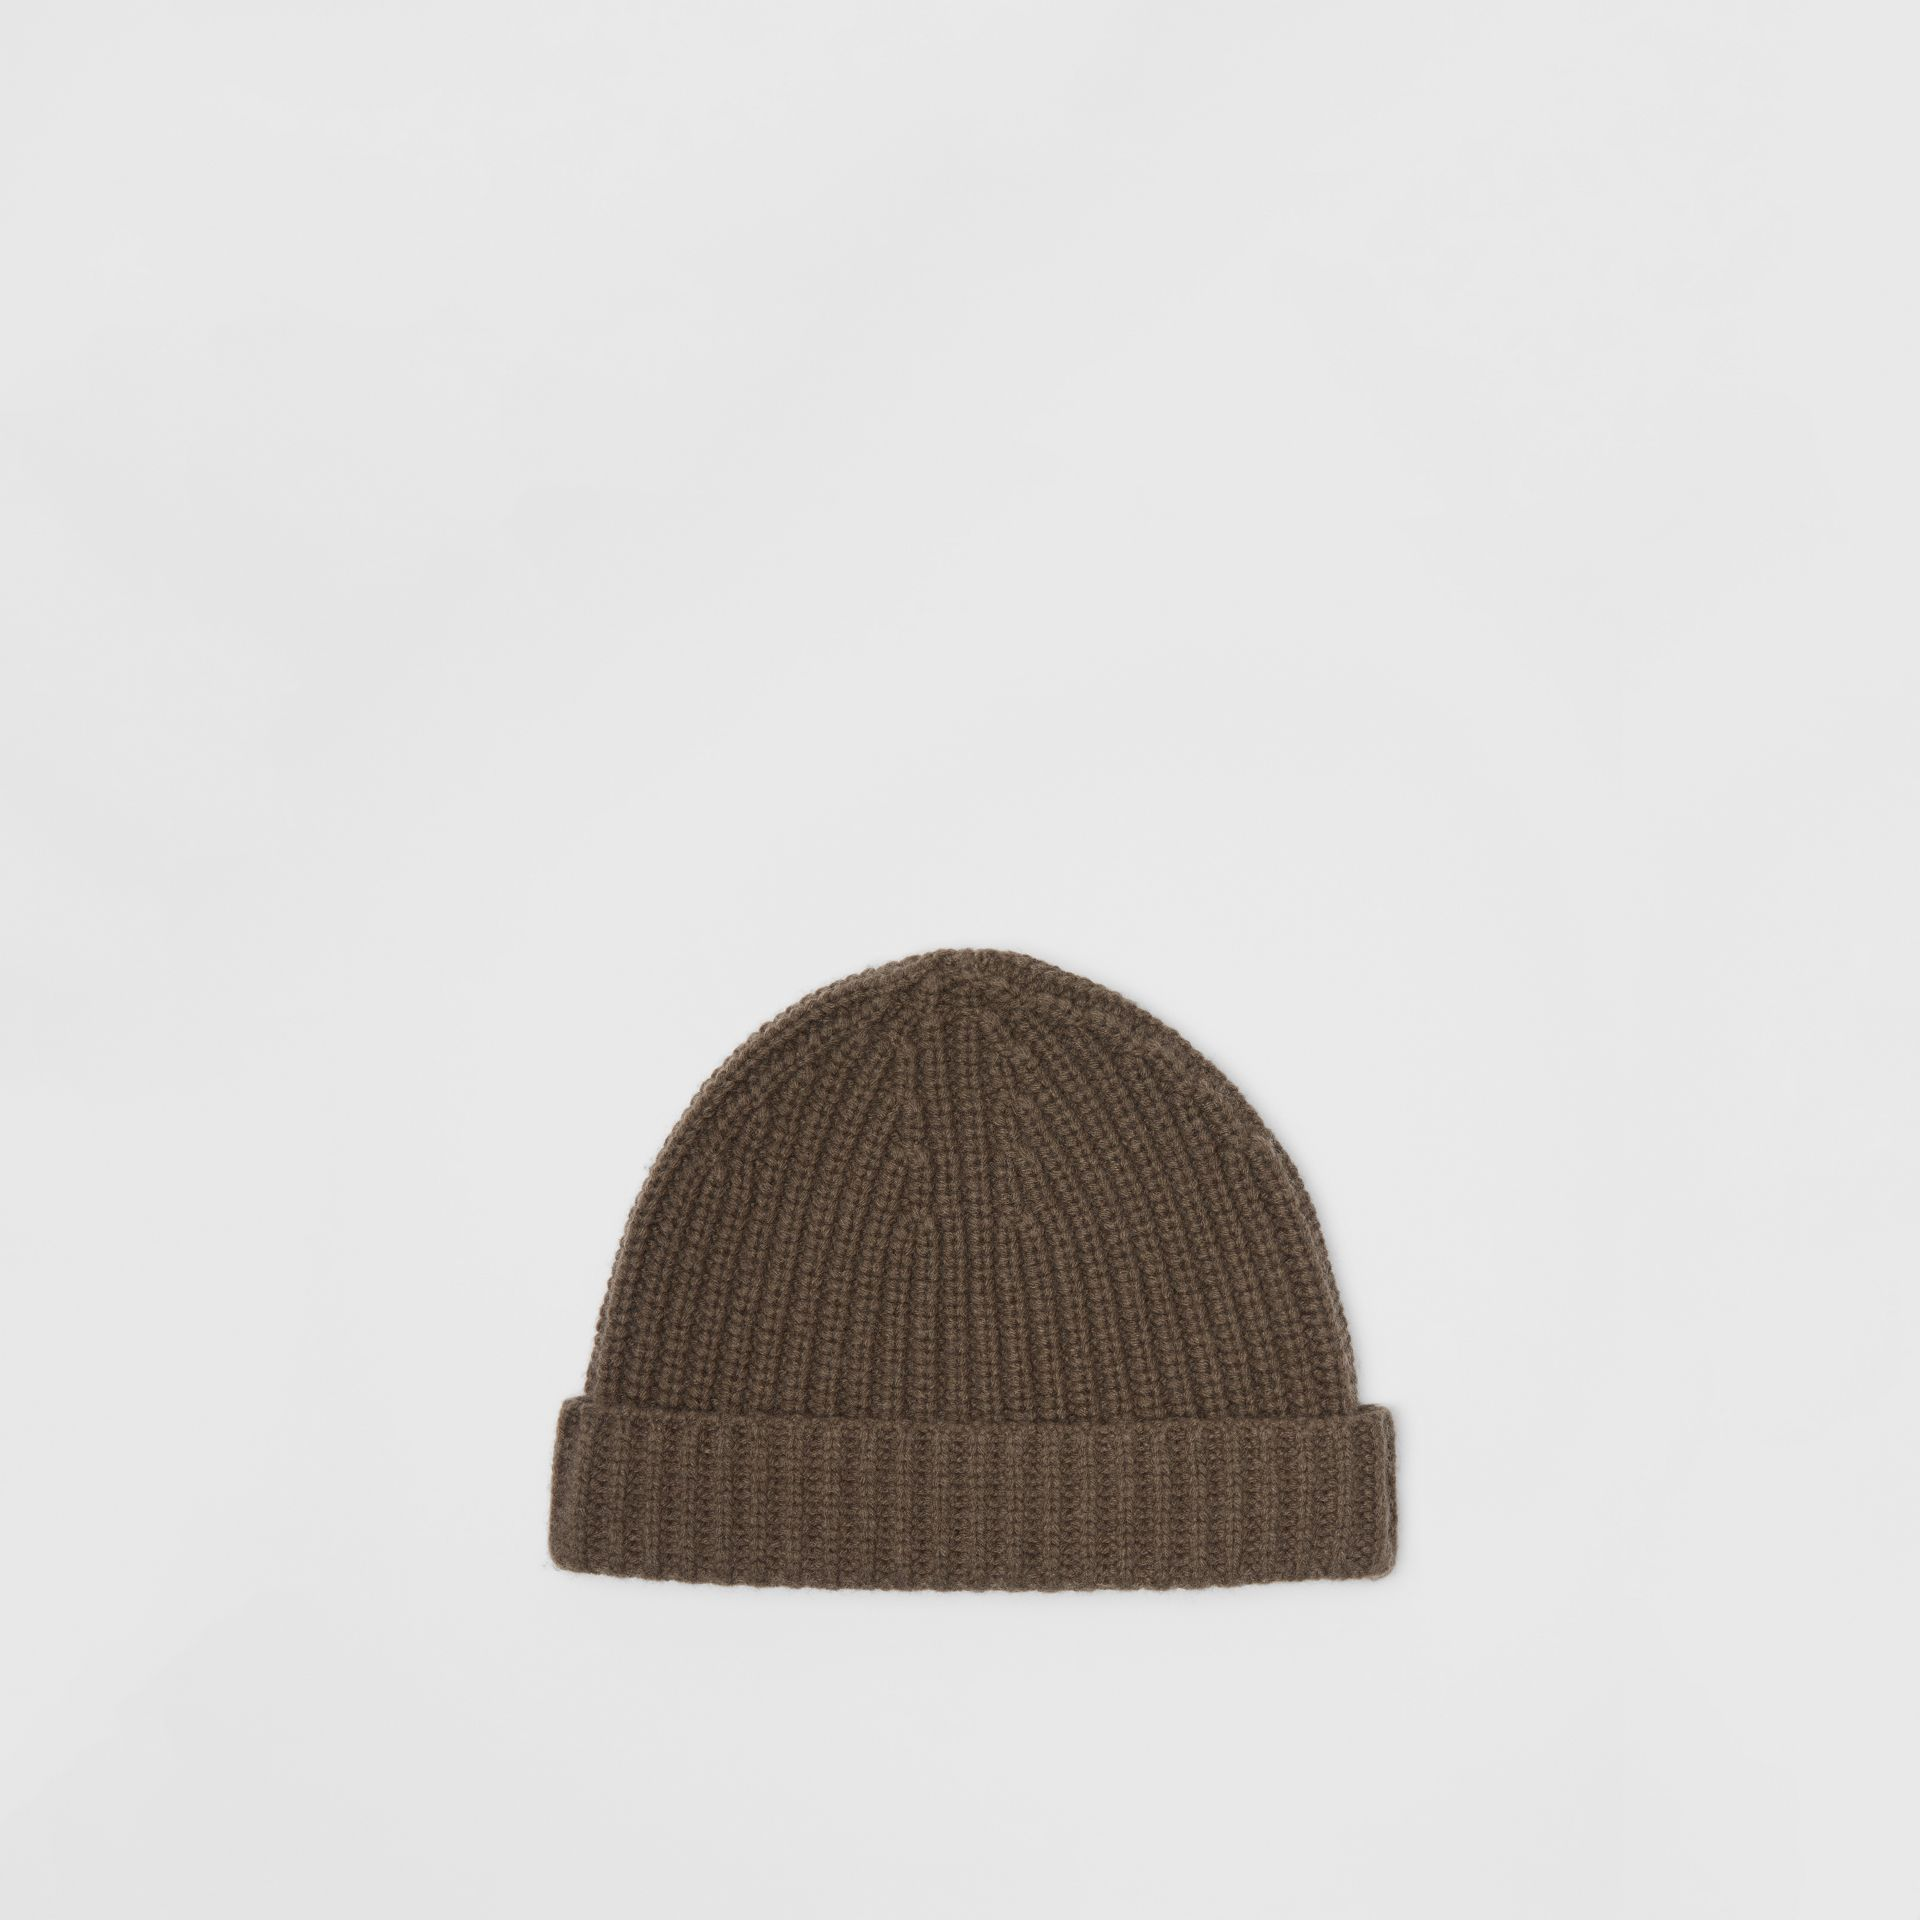 Rib Knit Cashmere Beanie in Olive Green | Burberry - gallery image 4